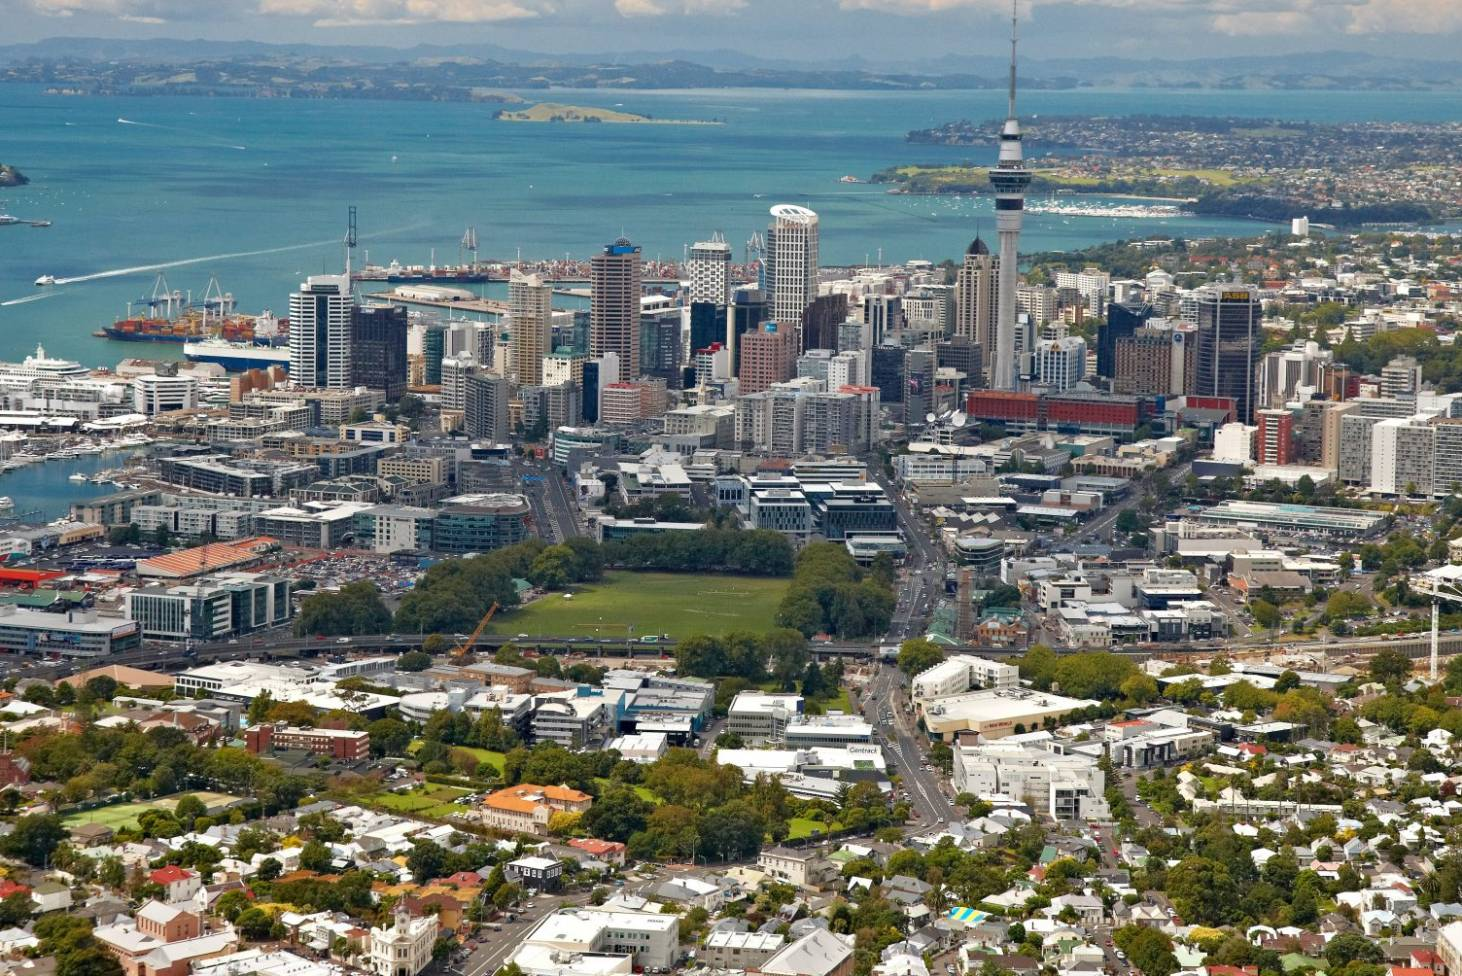 15 things no one told me about living in Auckland | Stuff.co.nz